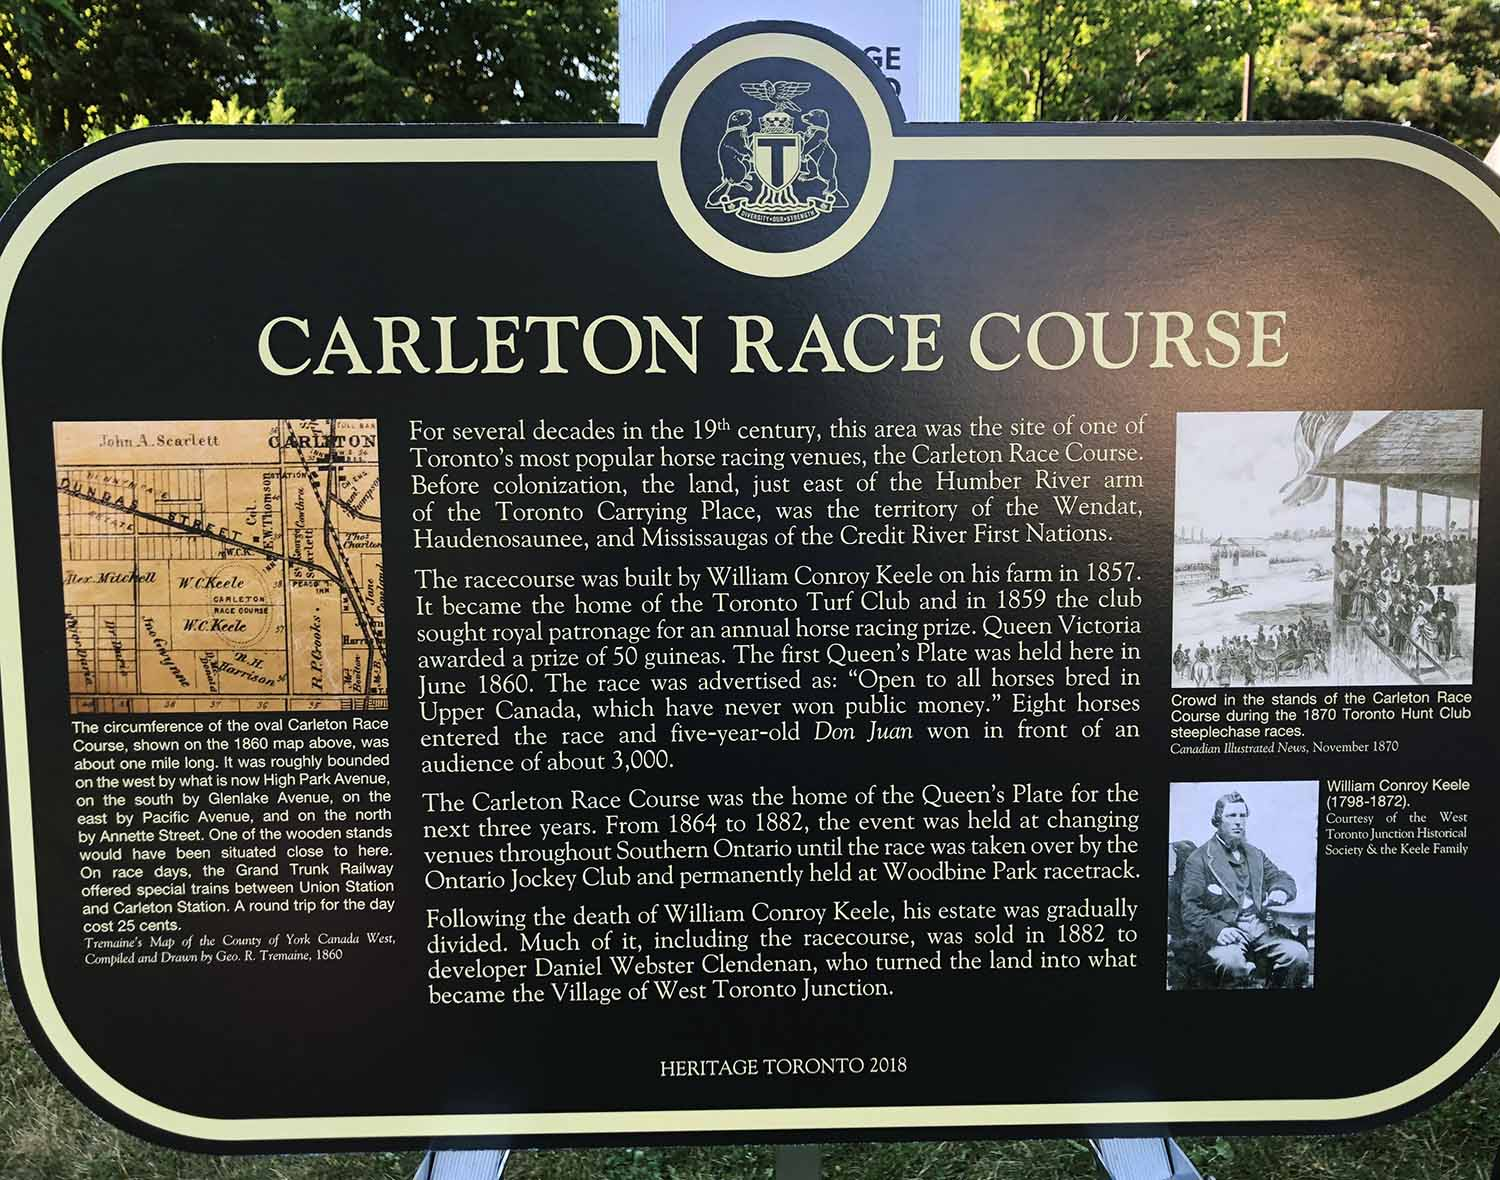 The historic plaque honouring Carleton Race Course (Emily Mallin Photo)